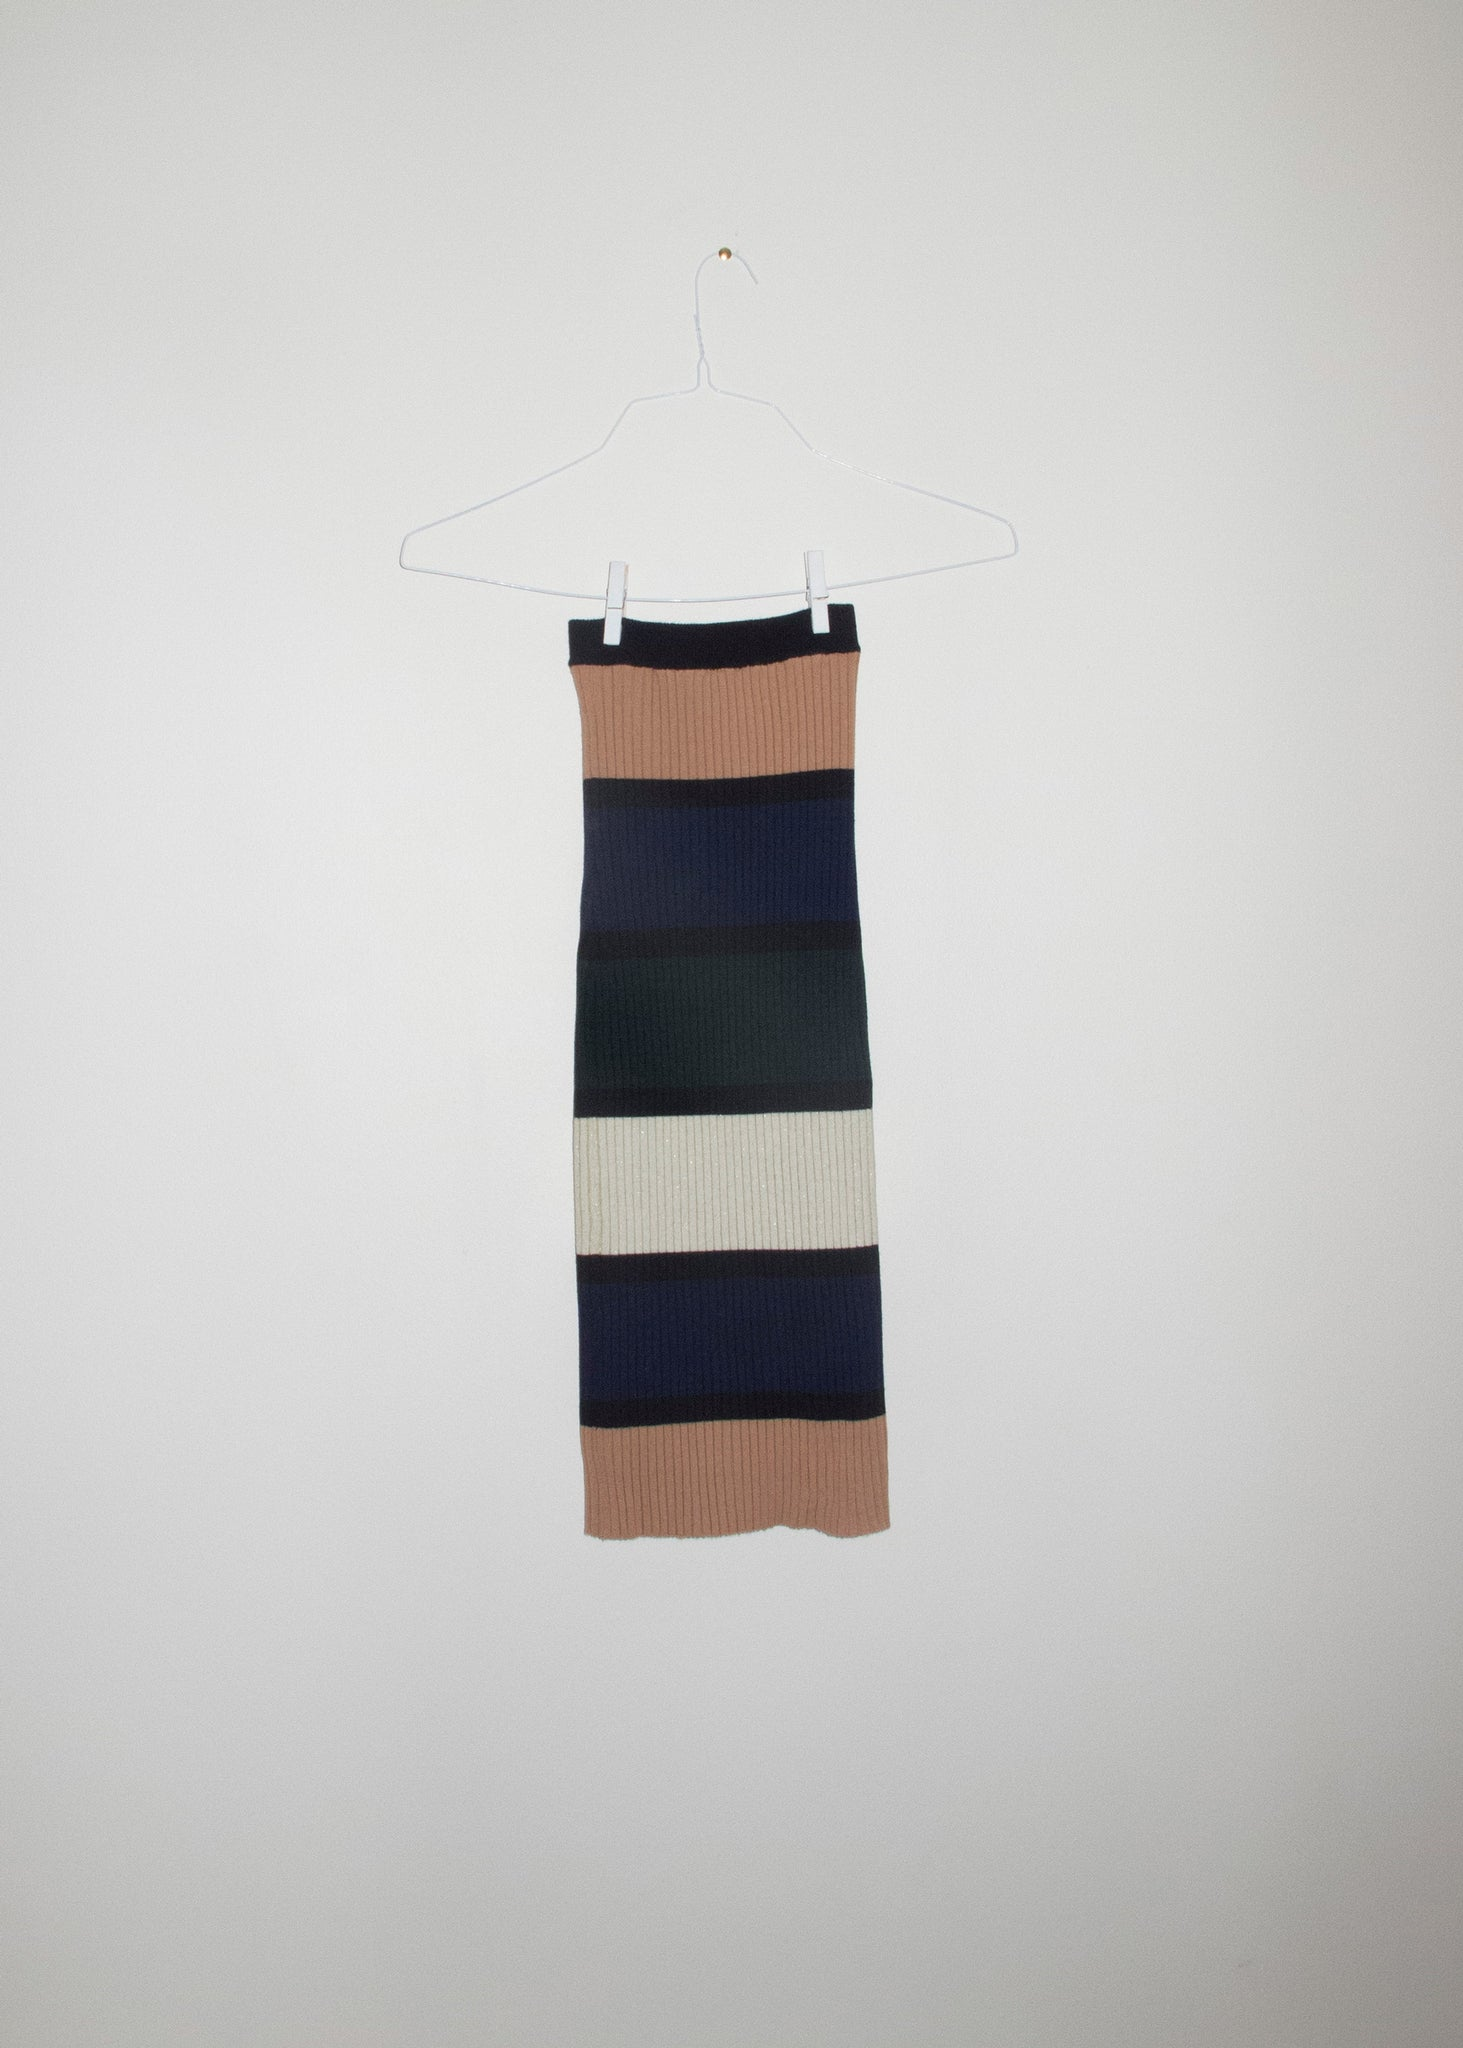 NONNA Tube Skirt in Block Stripe